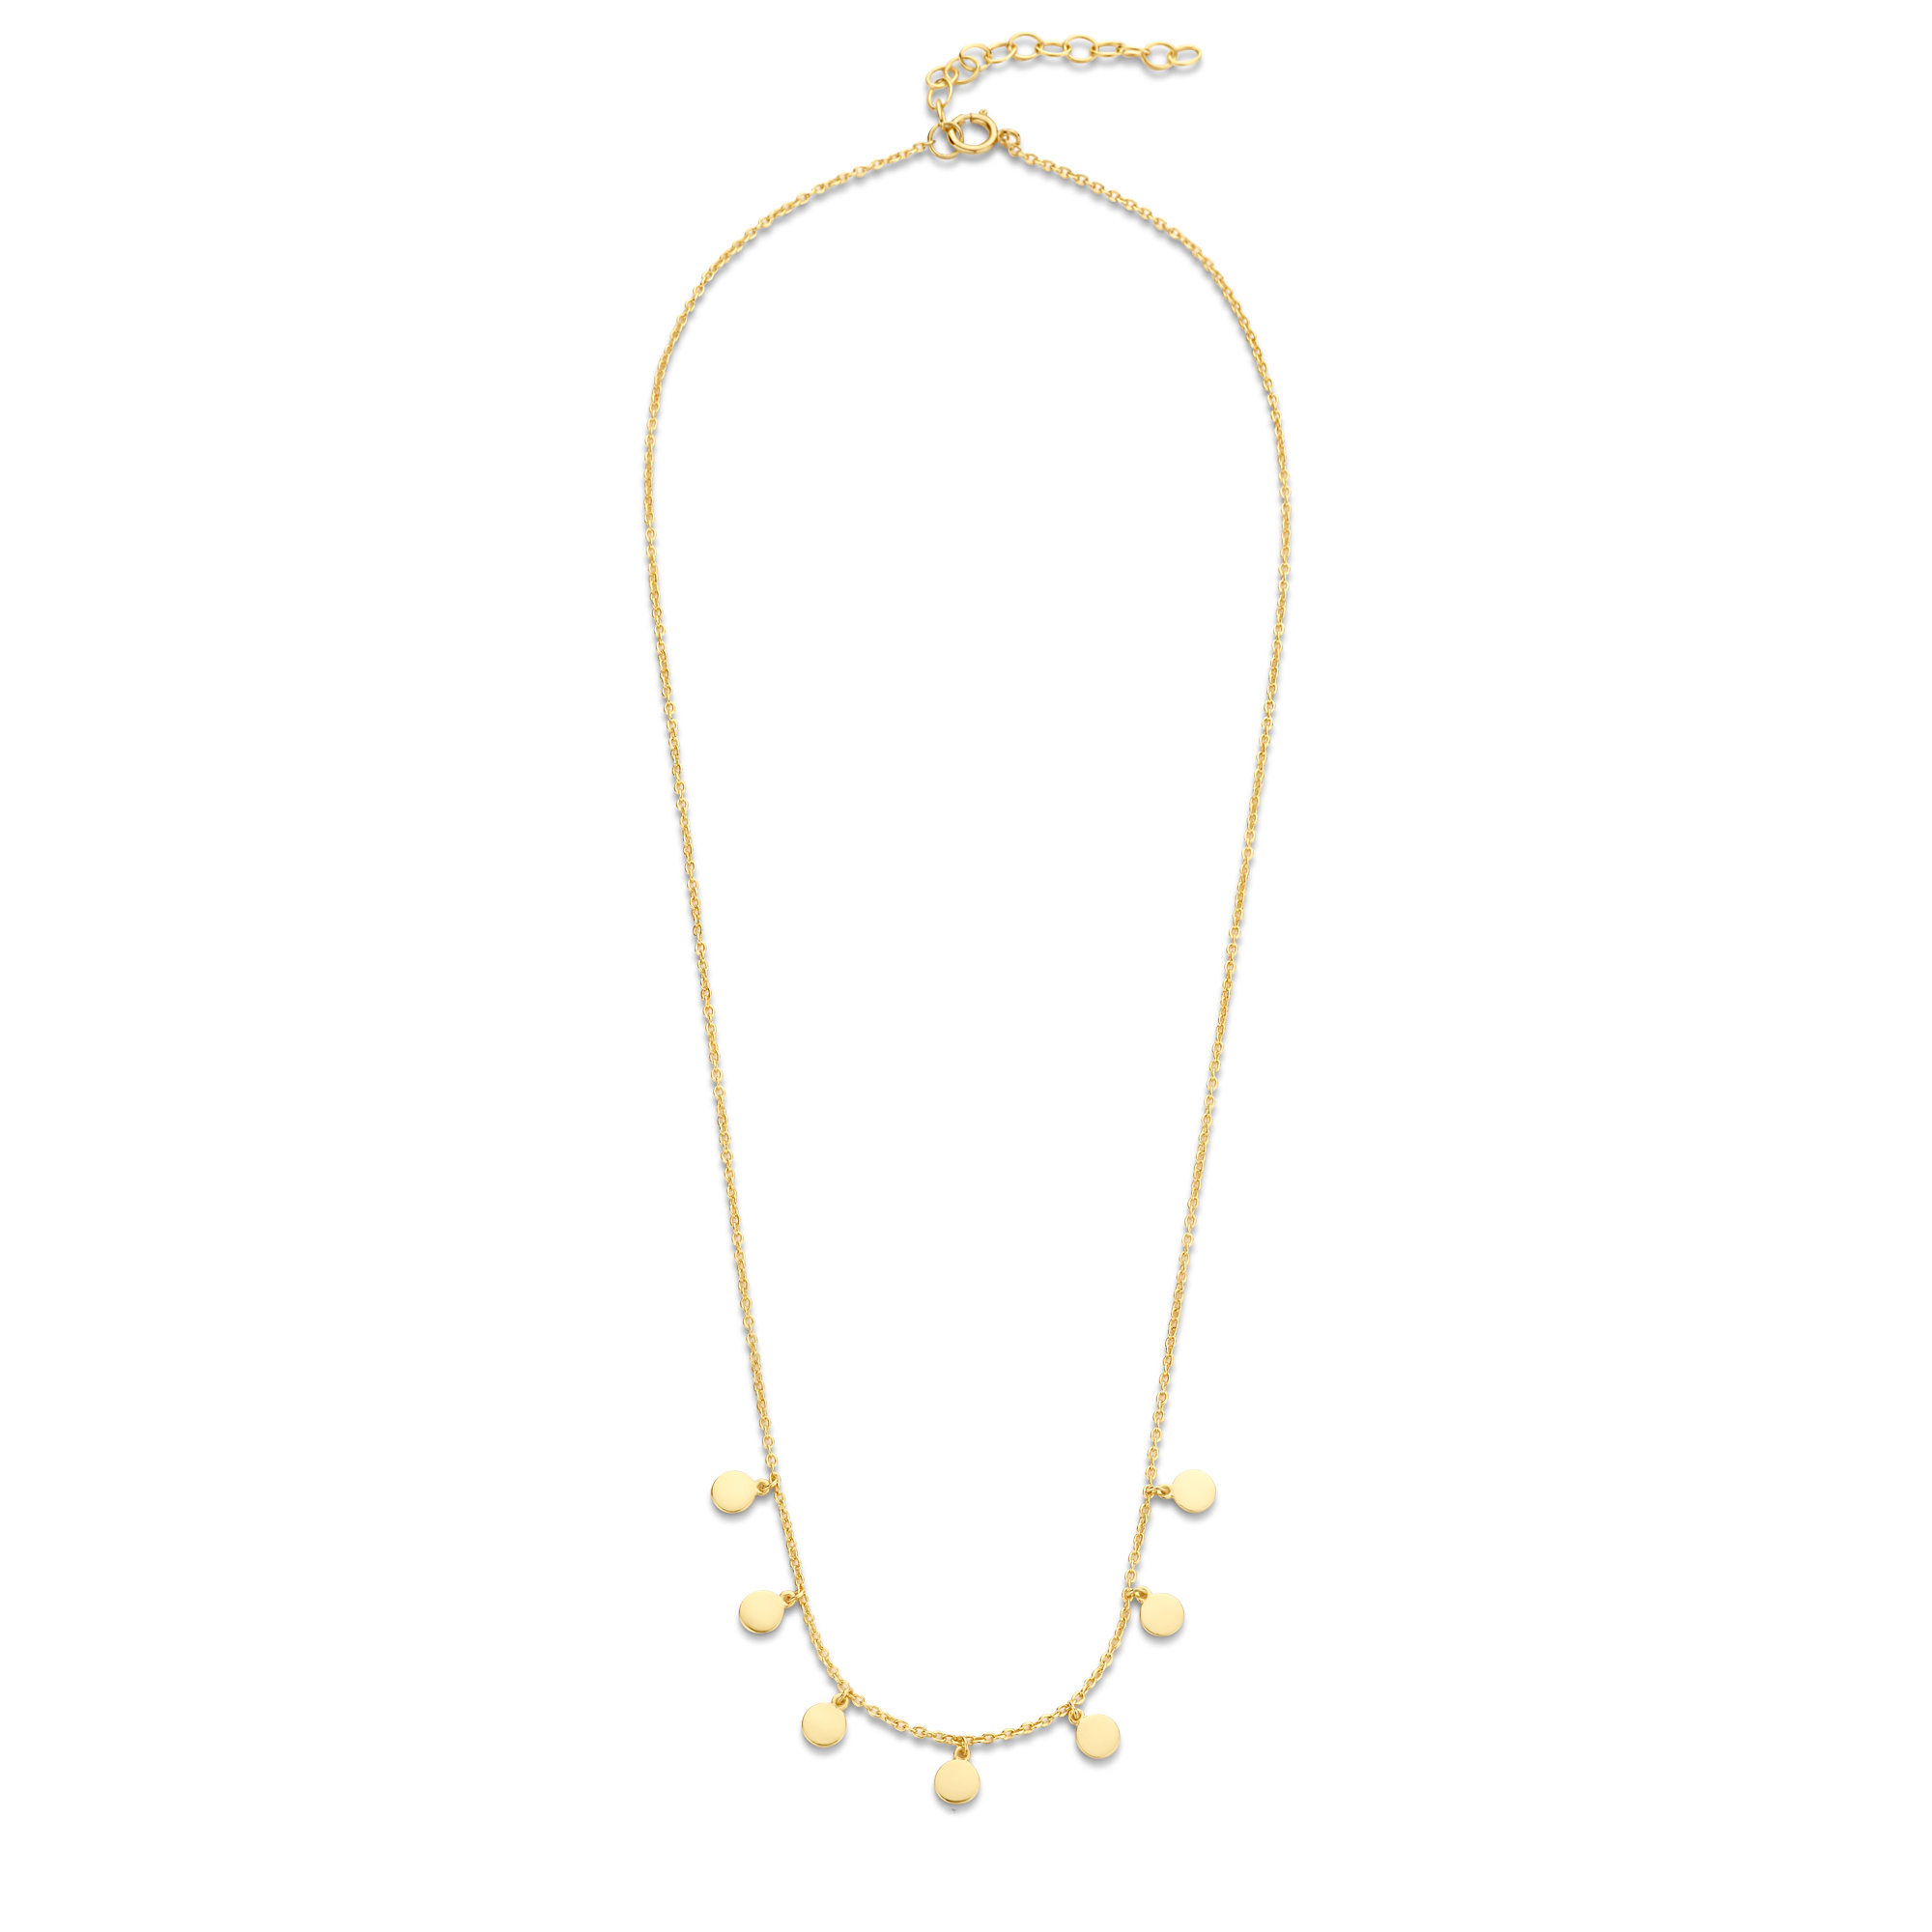 Selected Jewels Julie Belle 925 sterling zilveren goudkleurige ketting met muntjes